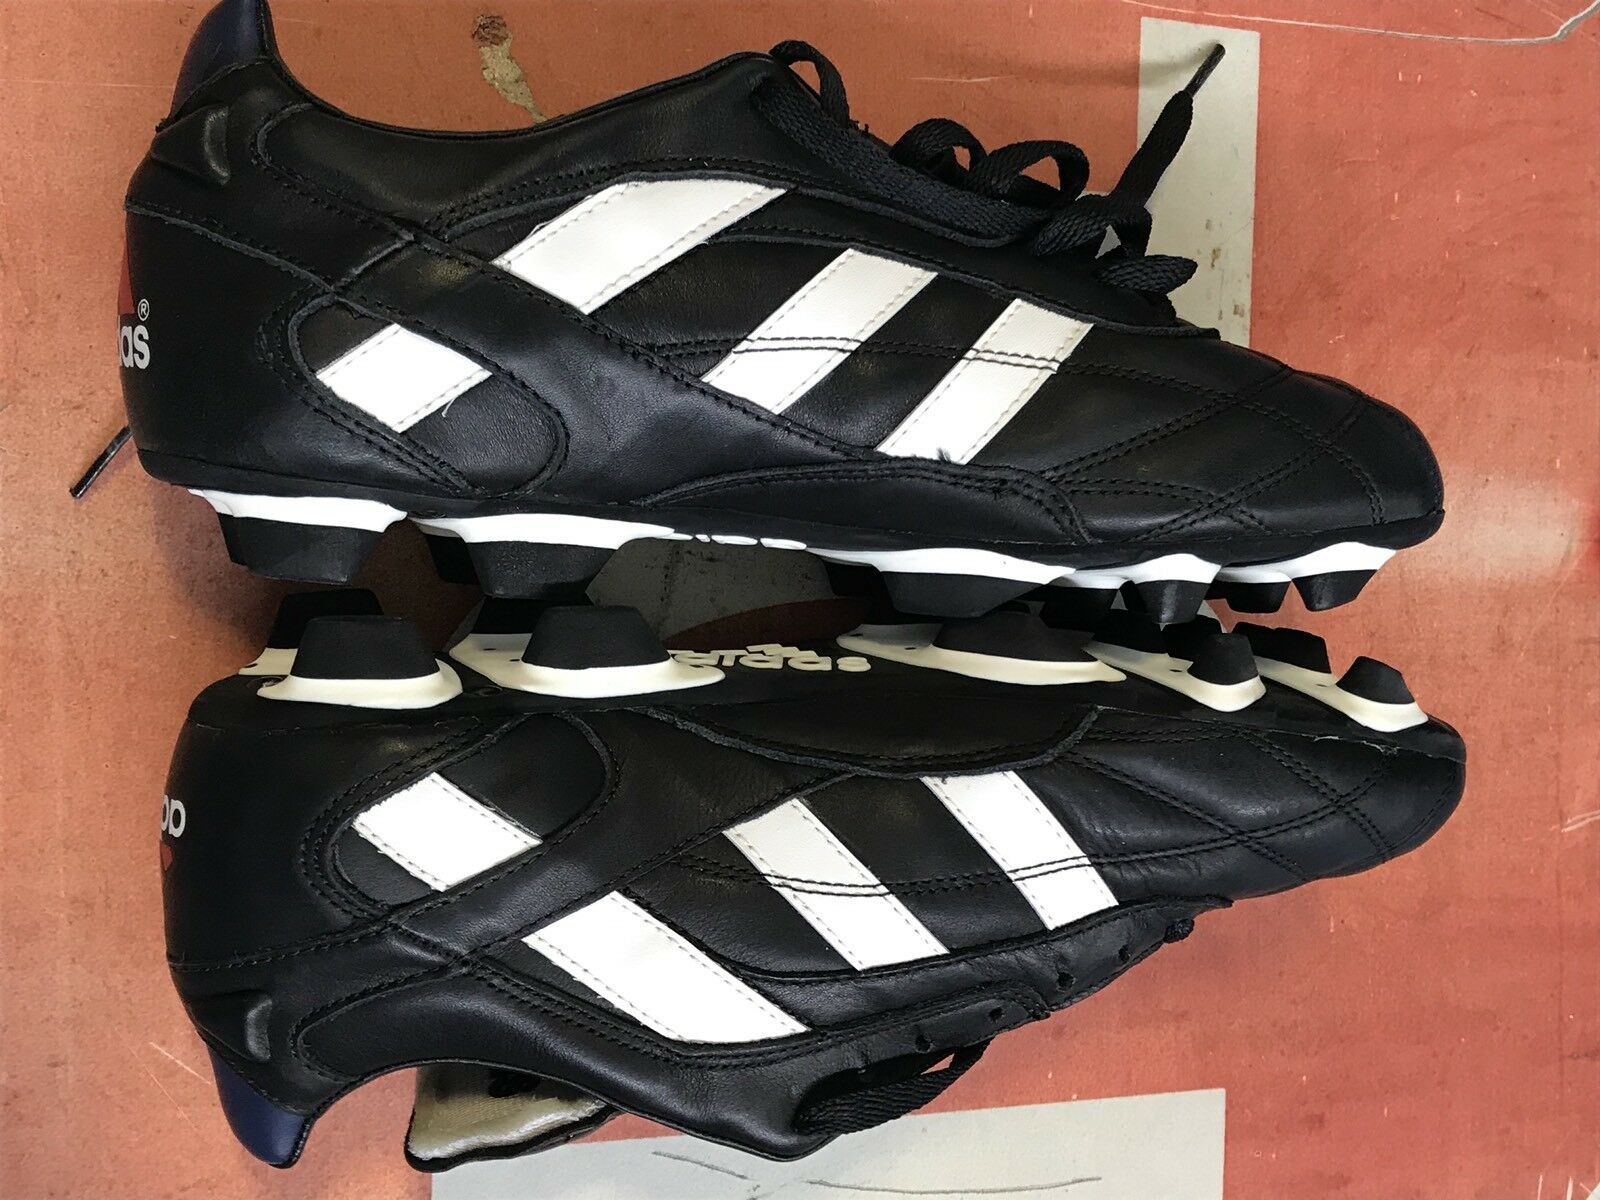 VTG adidas Cordoba Cleats Spikes Athletic schuhe Men's Sz 8.5